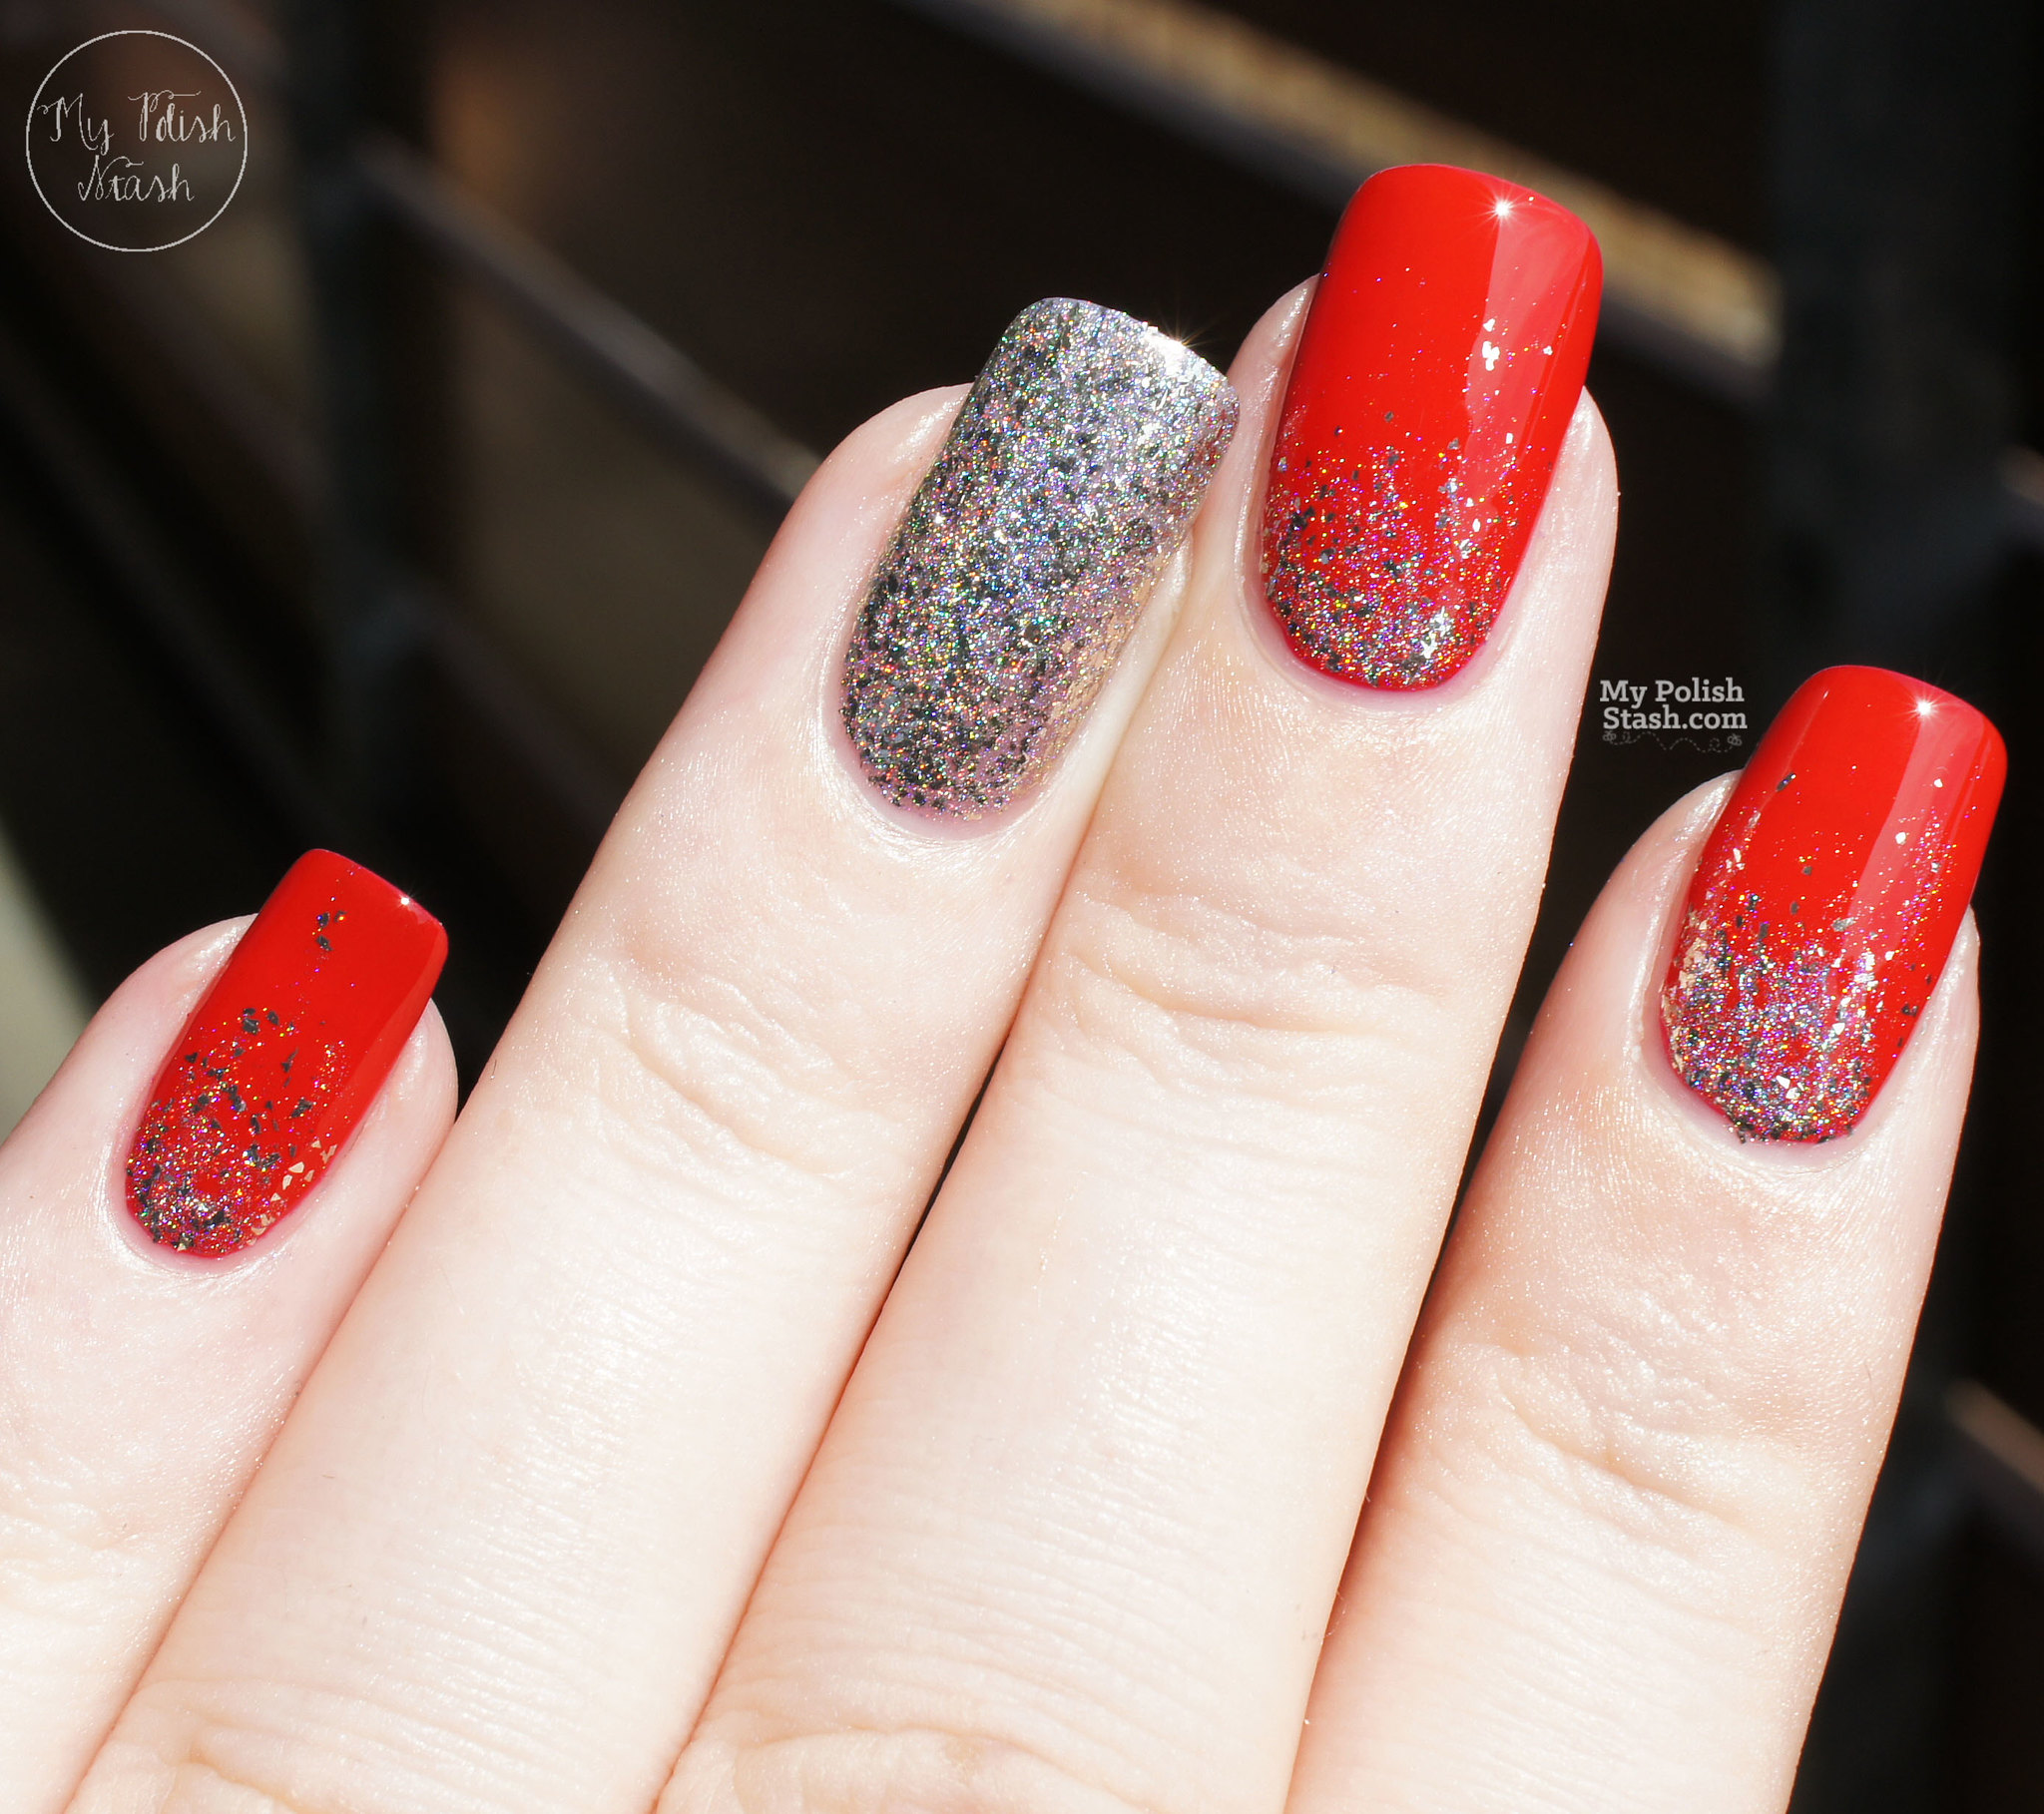 essie-really-red-FUNlacquer-pay-day-glitter-gradient-2